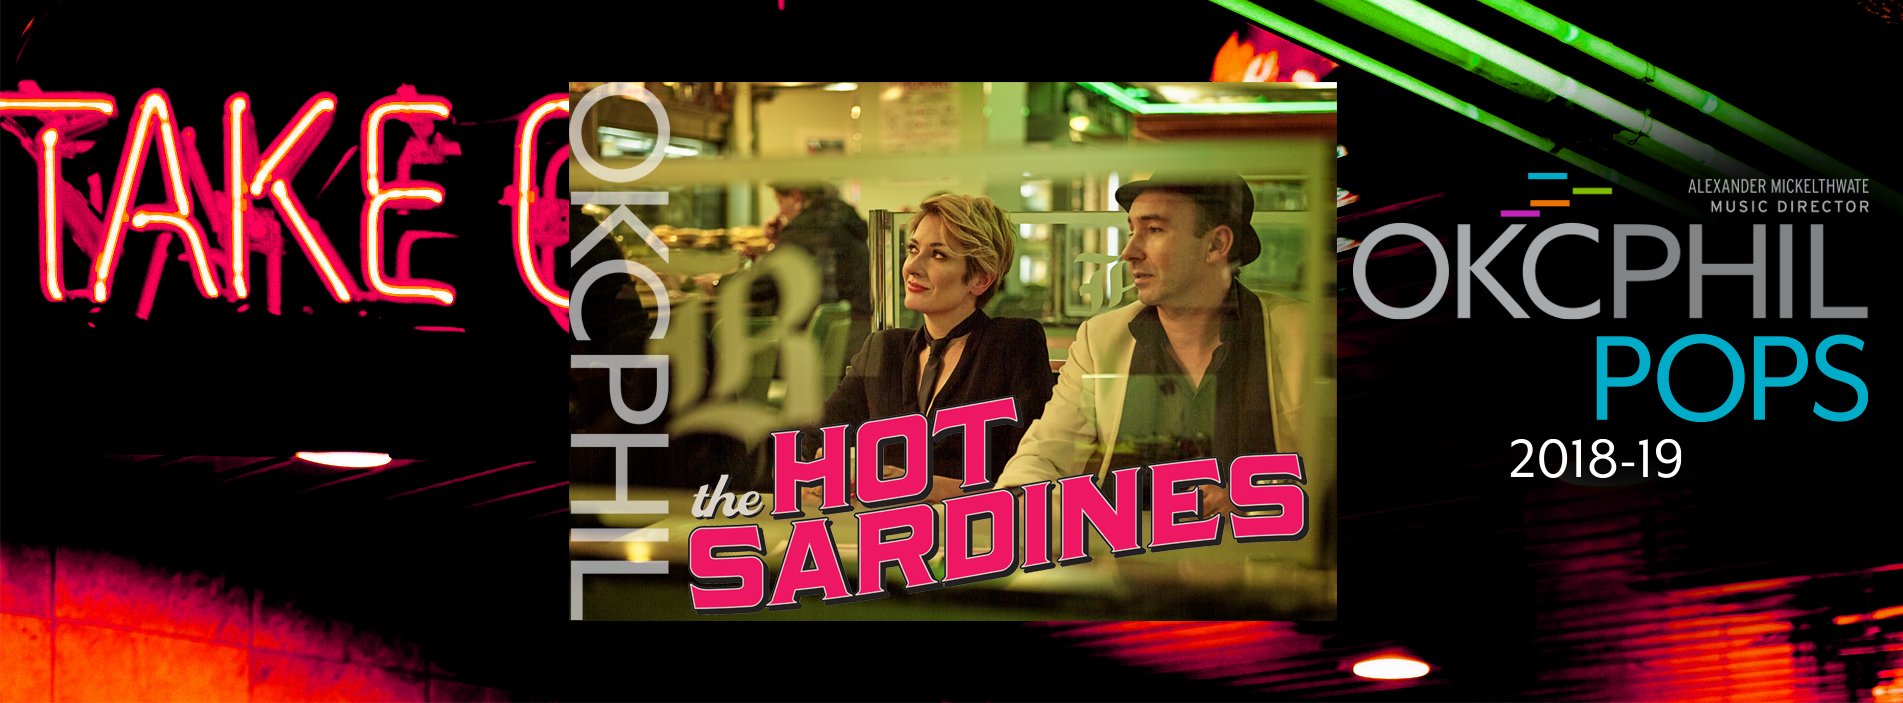 Pops 4 | The Hot Sardines